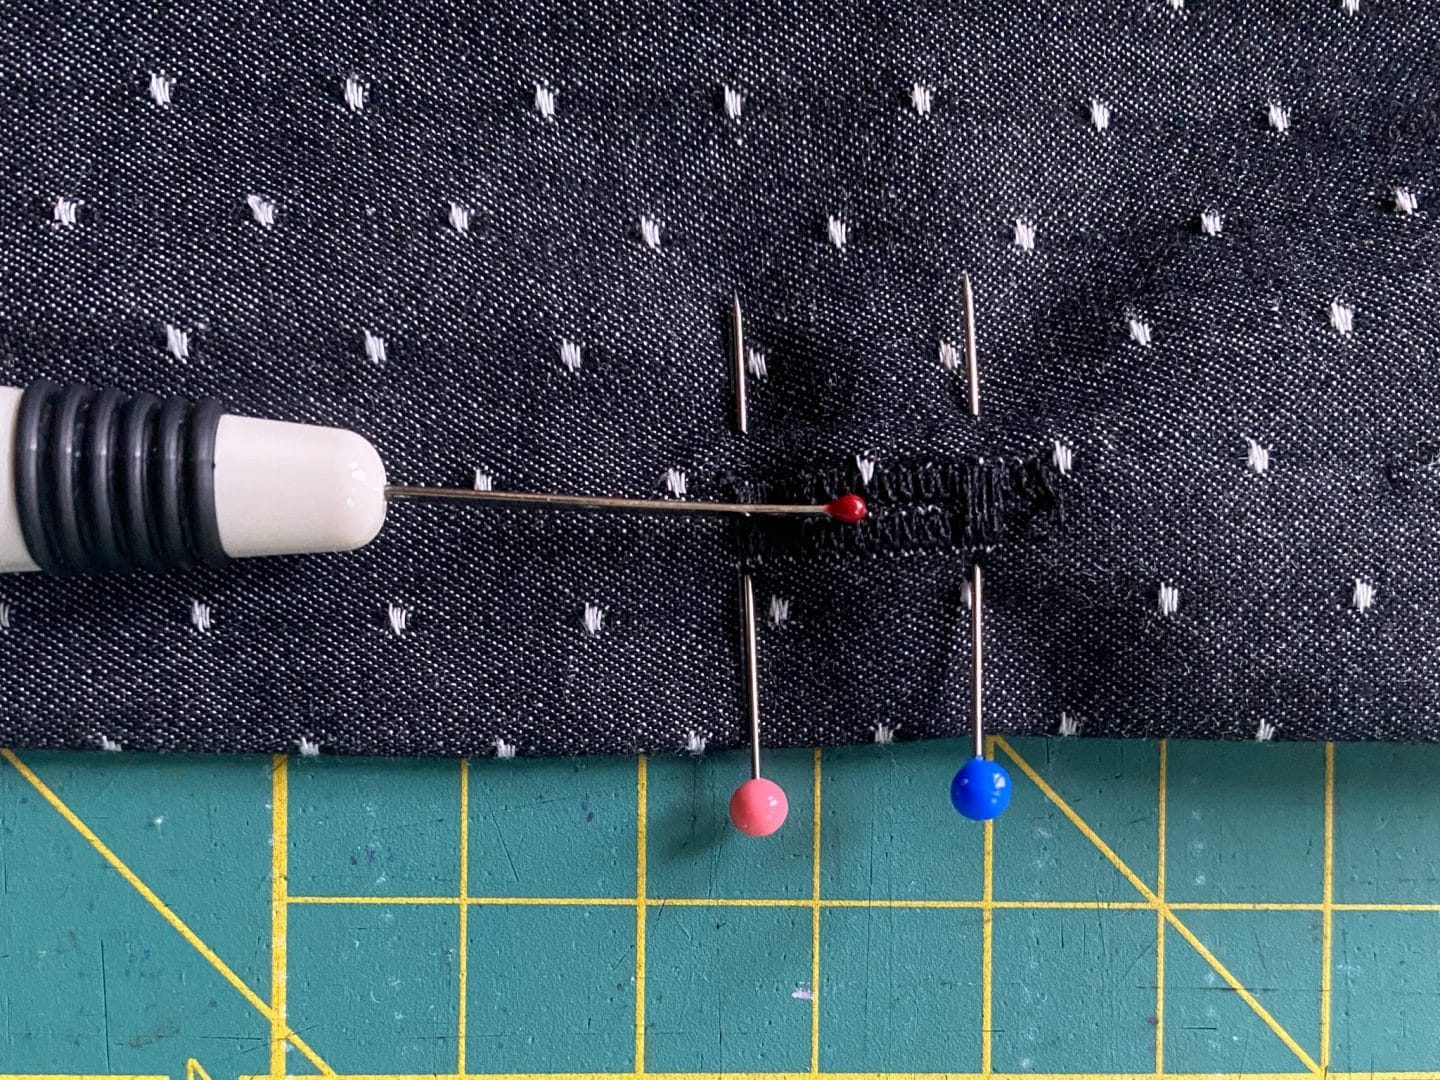 Image of a buttonhole with two pins marking the beginning and the end of the buttonhole and a seam ripper reading to cut the buttonhole open